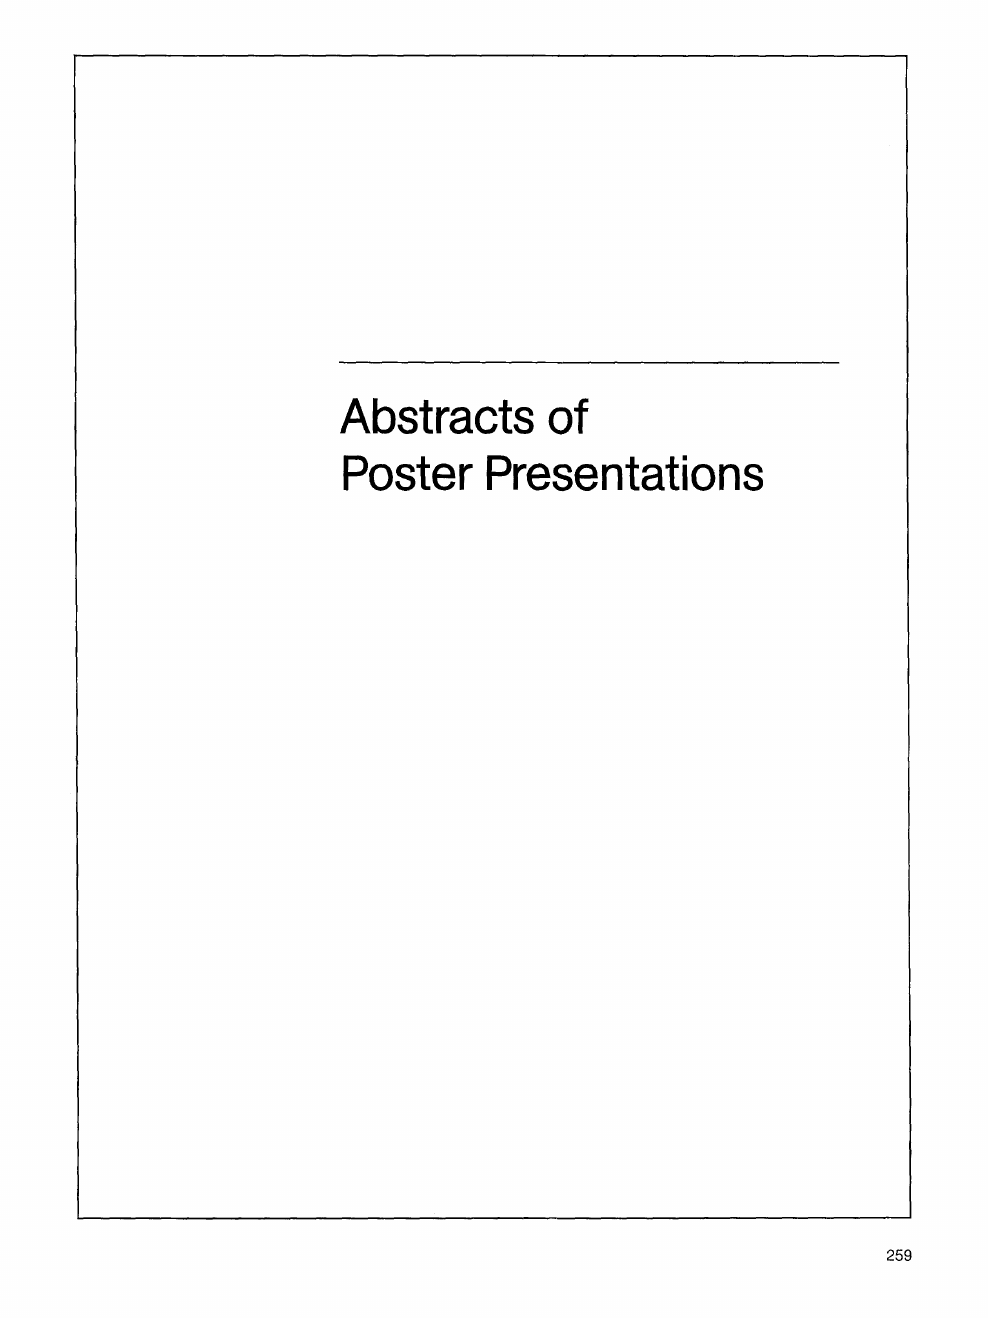 Abstracts of poster presentations – topic of research paper